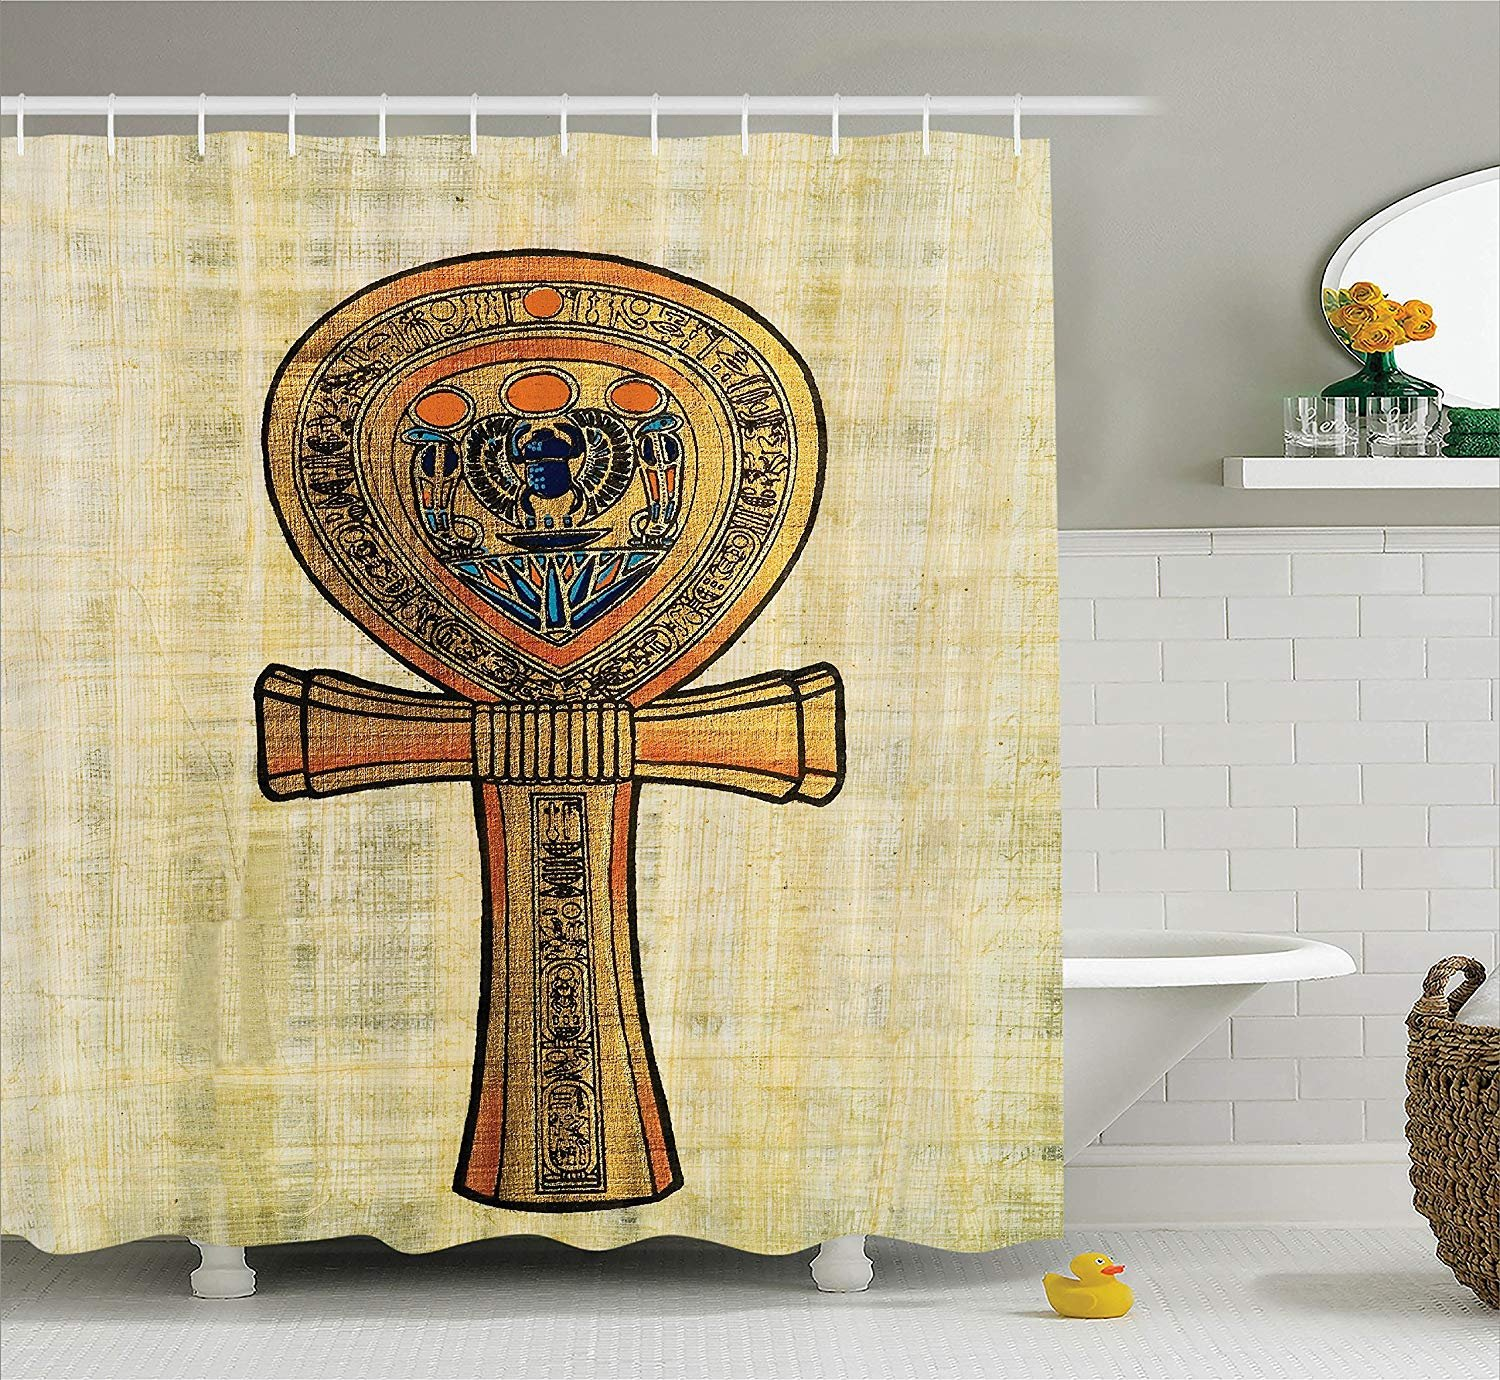 Printing Egyptian Decor Shower Curtain Set, Ancient Papyrus Presenting The Key of Life Traditional Empire Egyptian Print, PVC Free, Non-Toxic and Odorless Water Repellent Fabric, 72 x 84 Inches